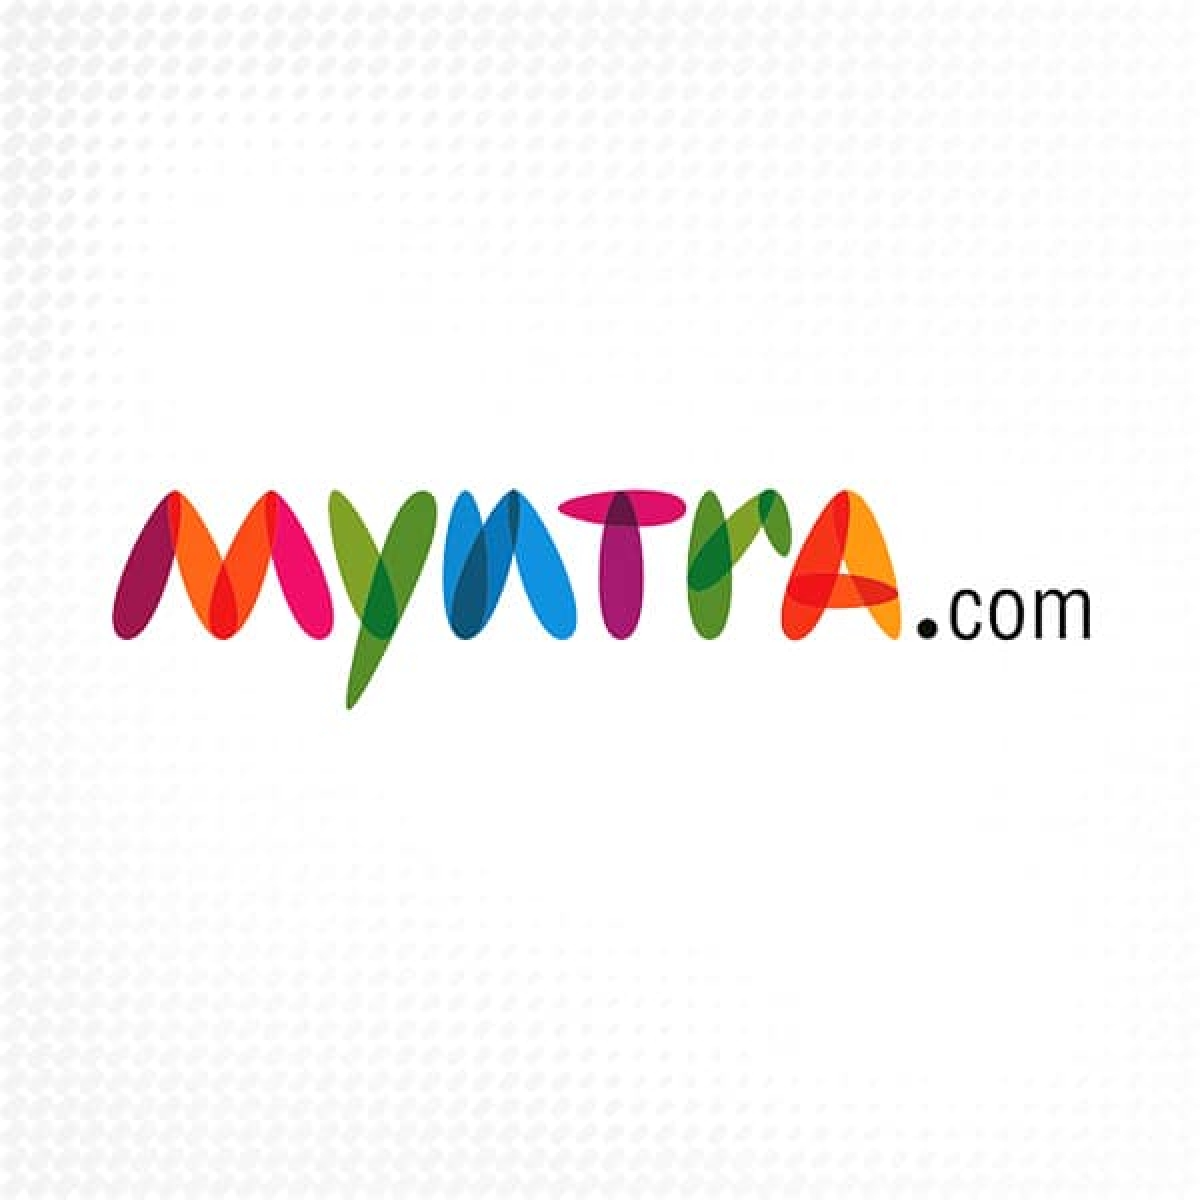 Myntra Designs FY20 loss widens to Rs 744.4 crore